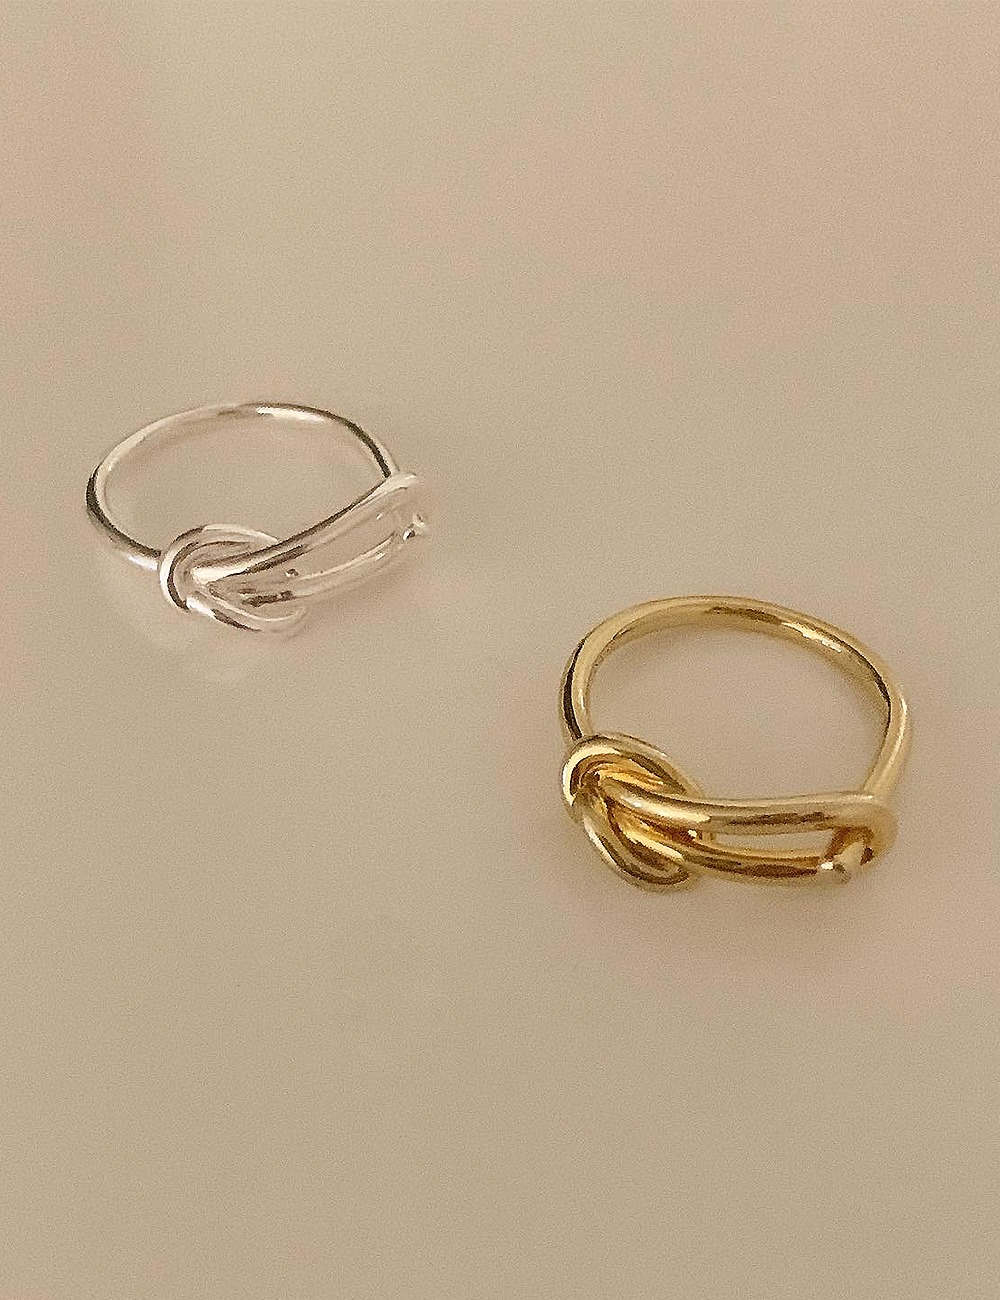 (silver 92.5) Clip ring